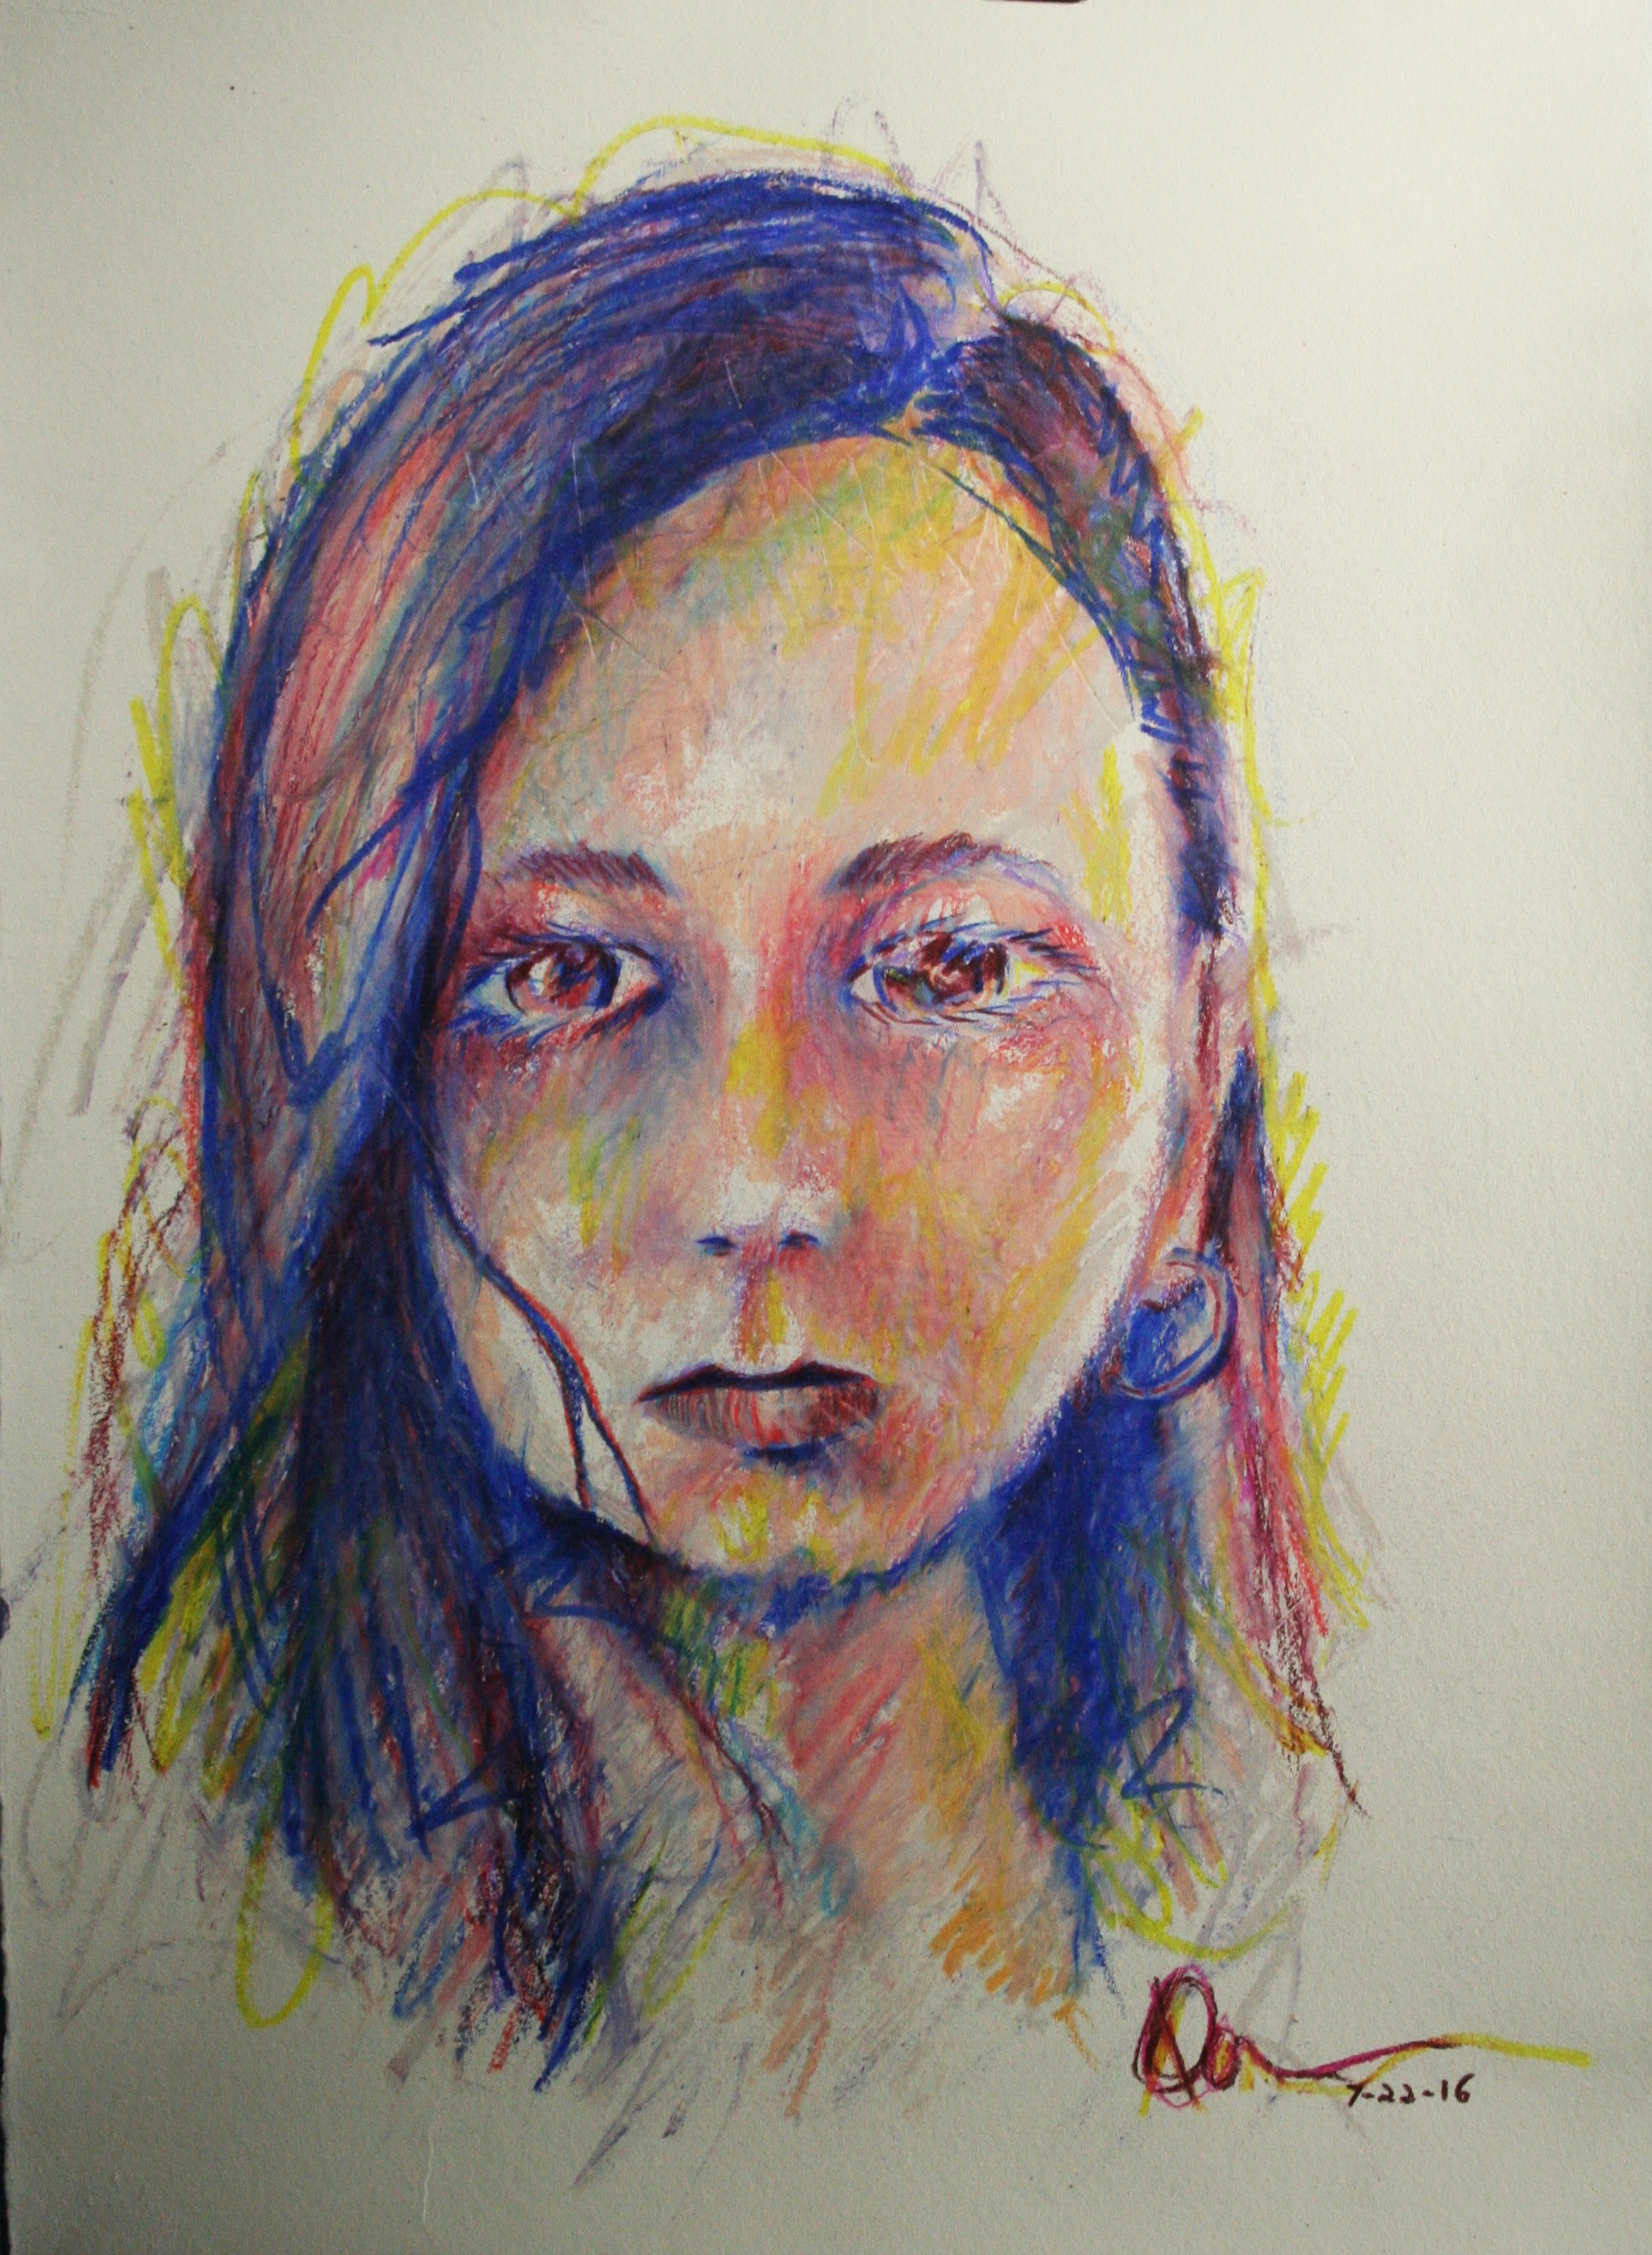 Donald Wash did this hour and a half pastel drawing.